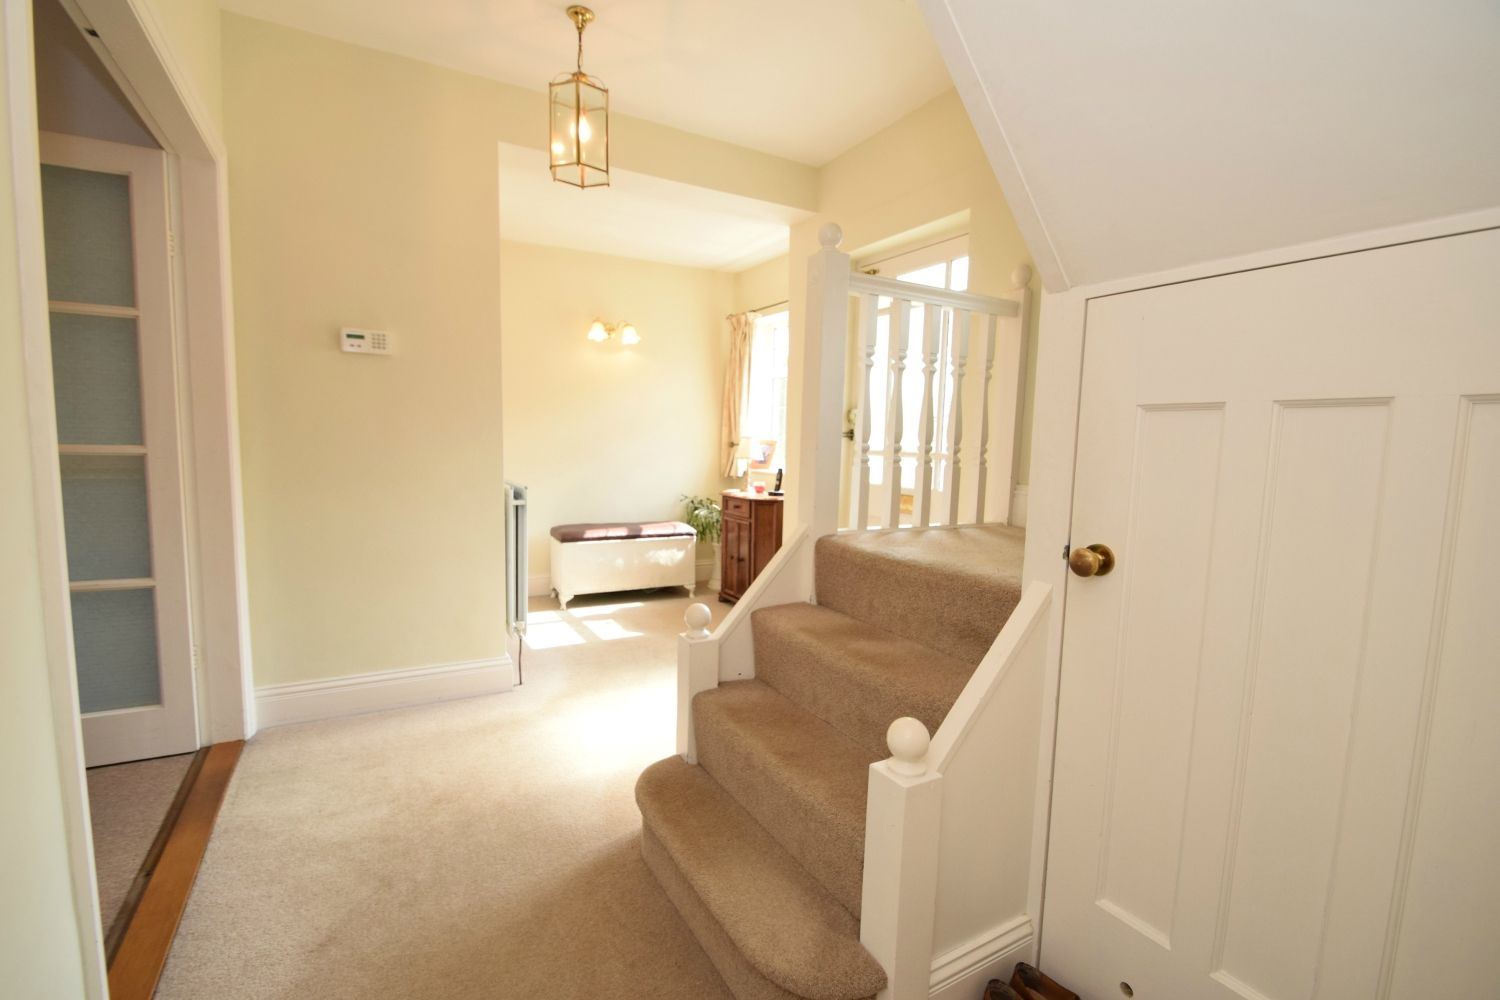 3 bed detached for sale in Reservoir Road, Cofton Hackett 4